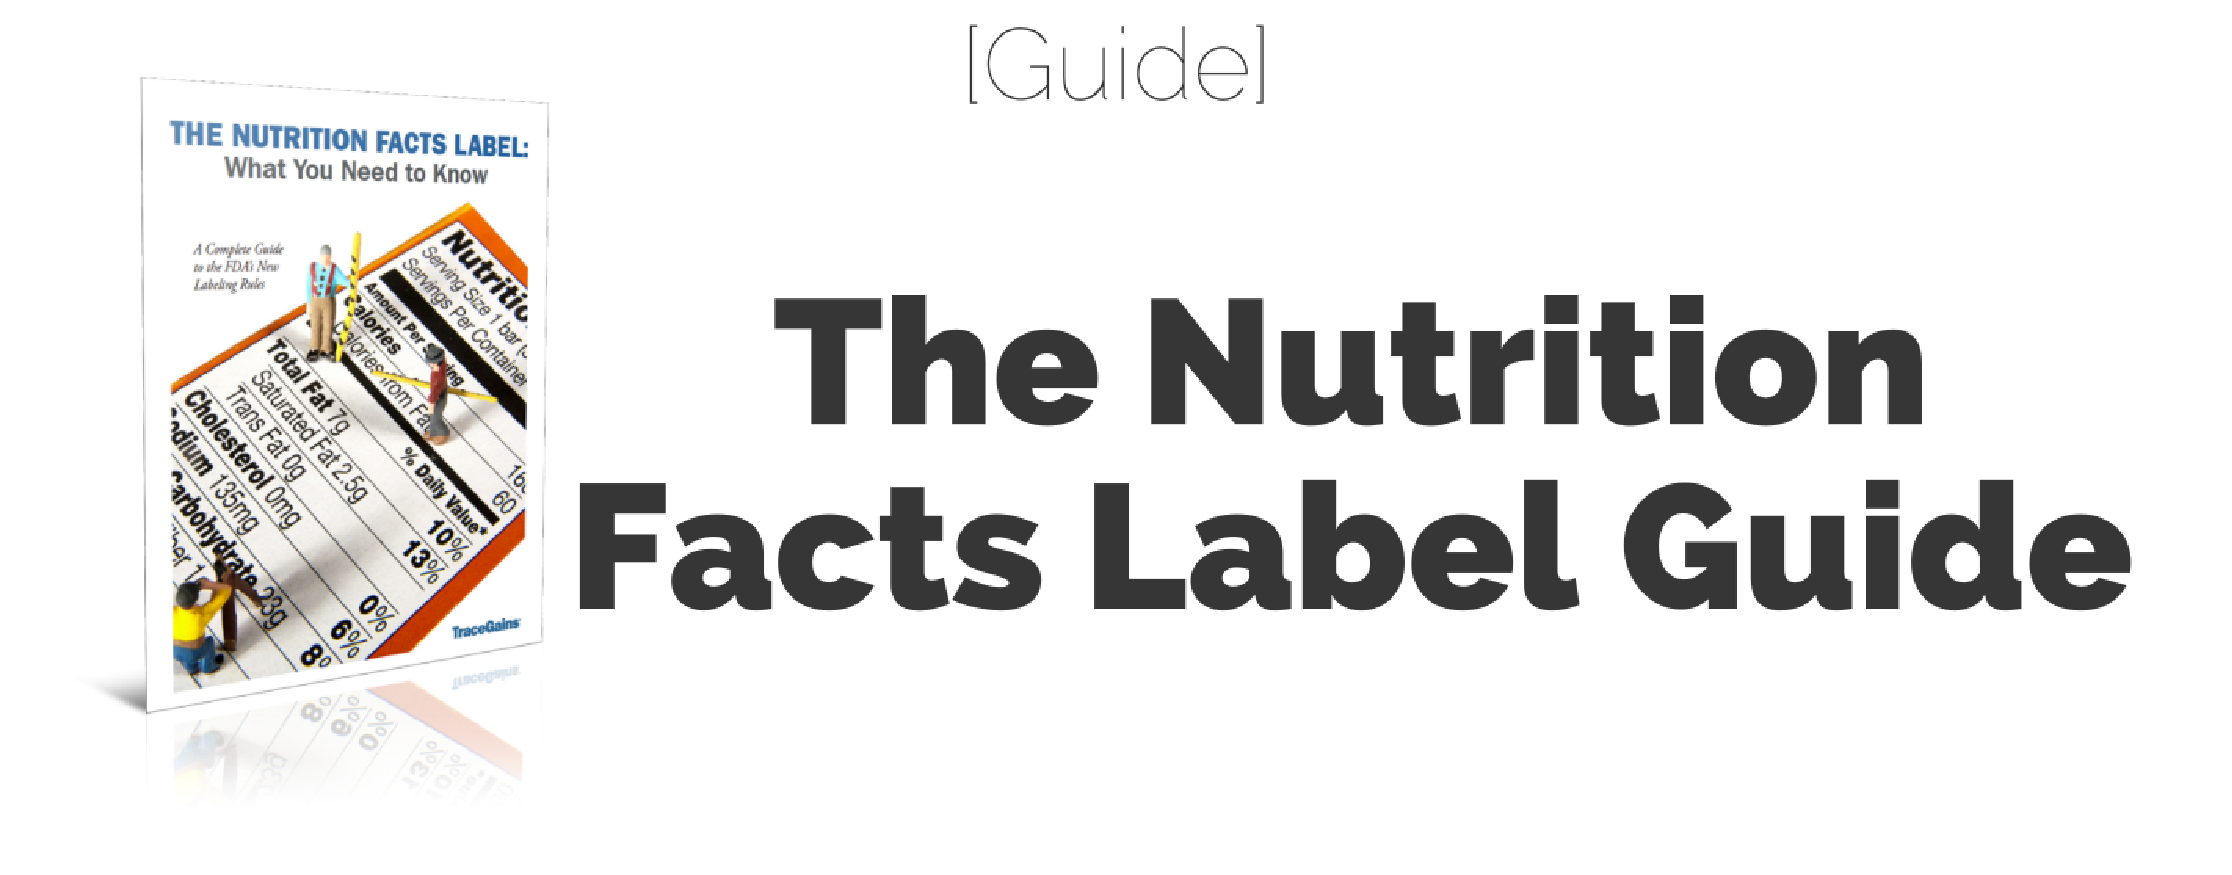 The Nutrition Facts Label Guide